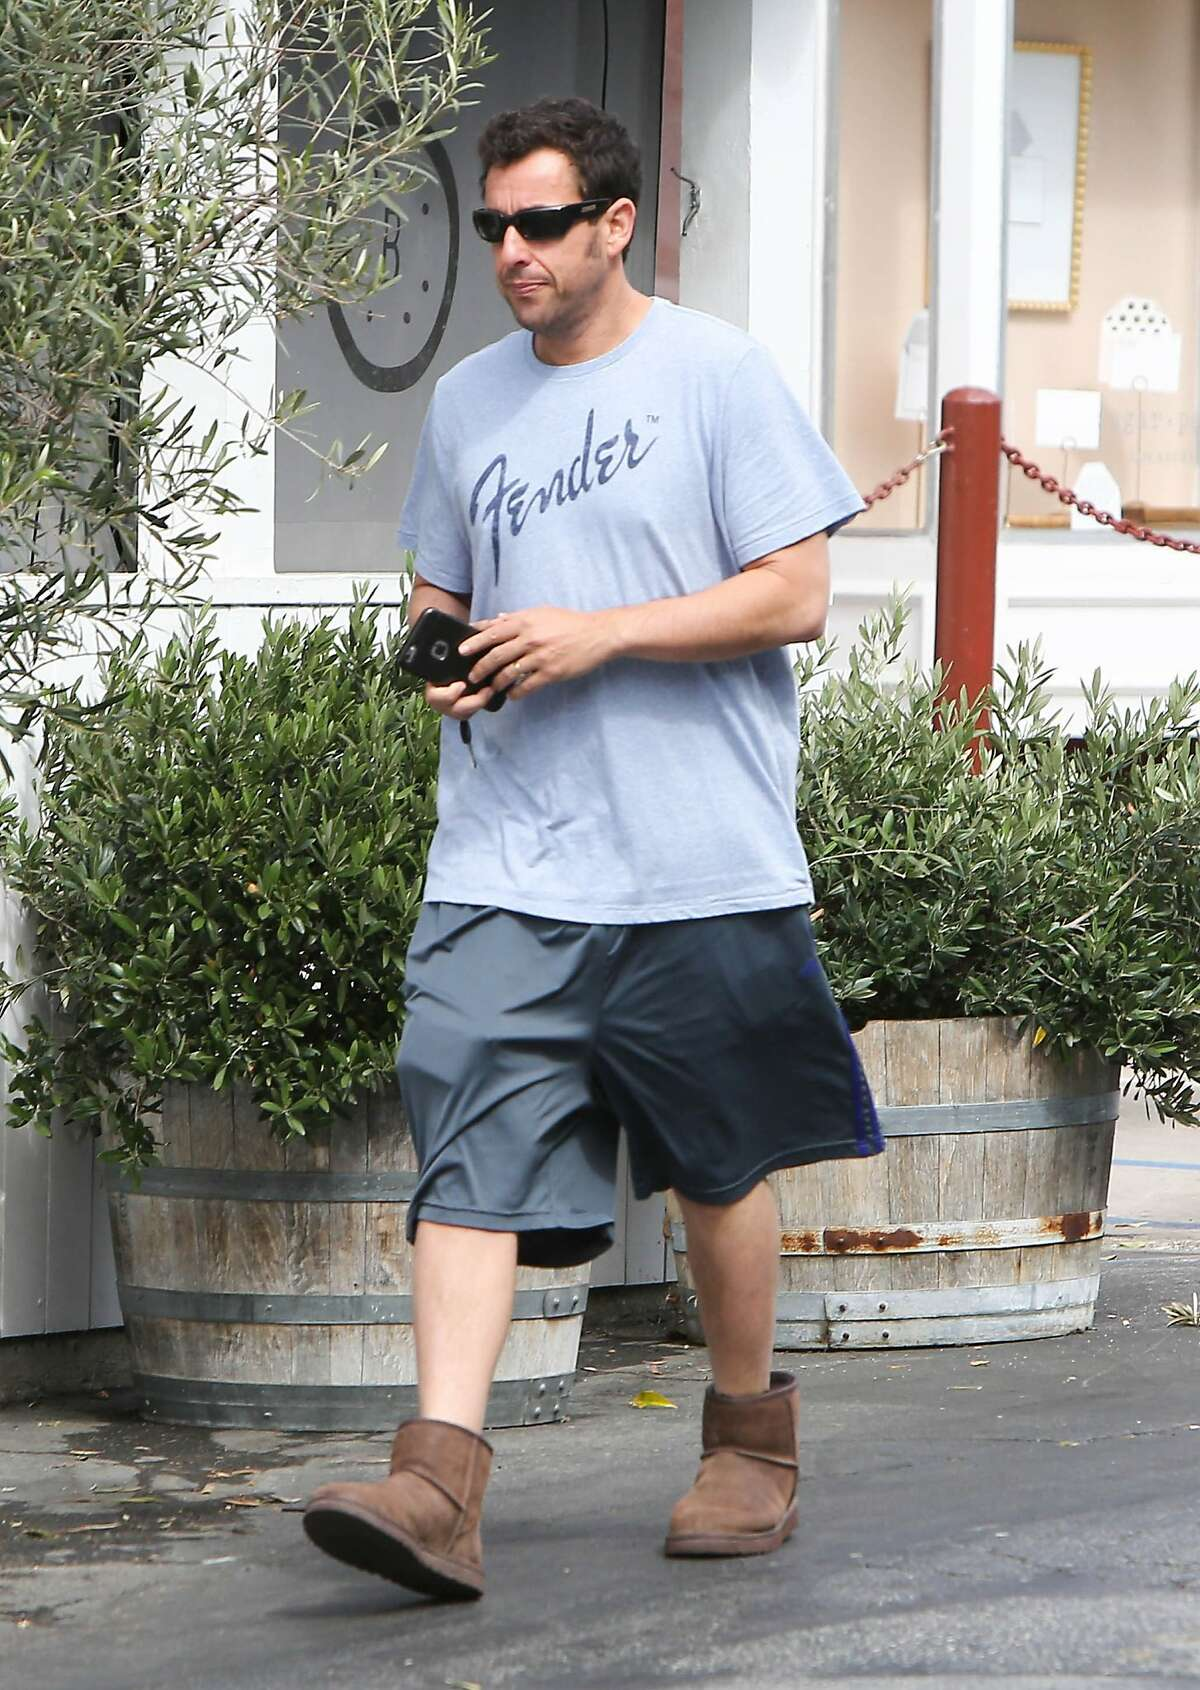 Adam Sandler has often embodied the dad physique, although most dads forgo the Uggs with shorts look.